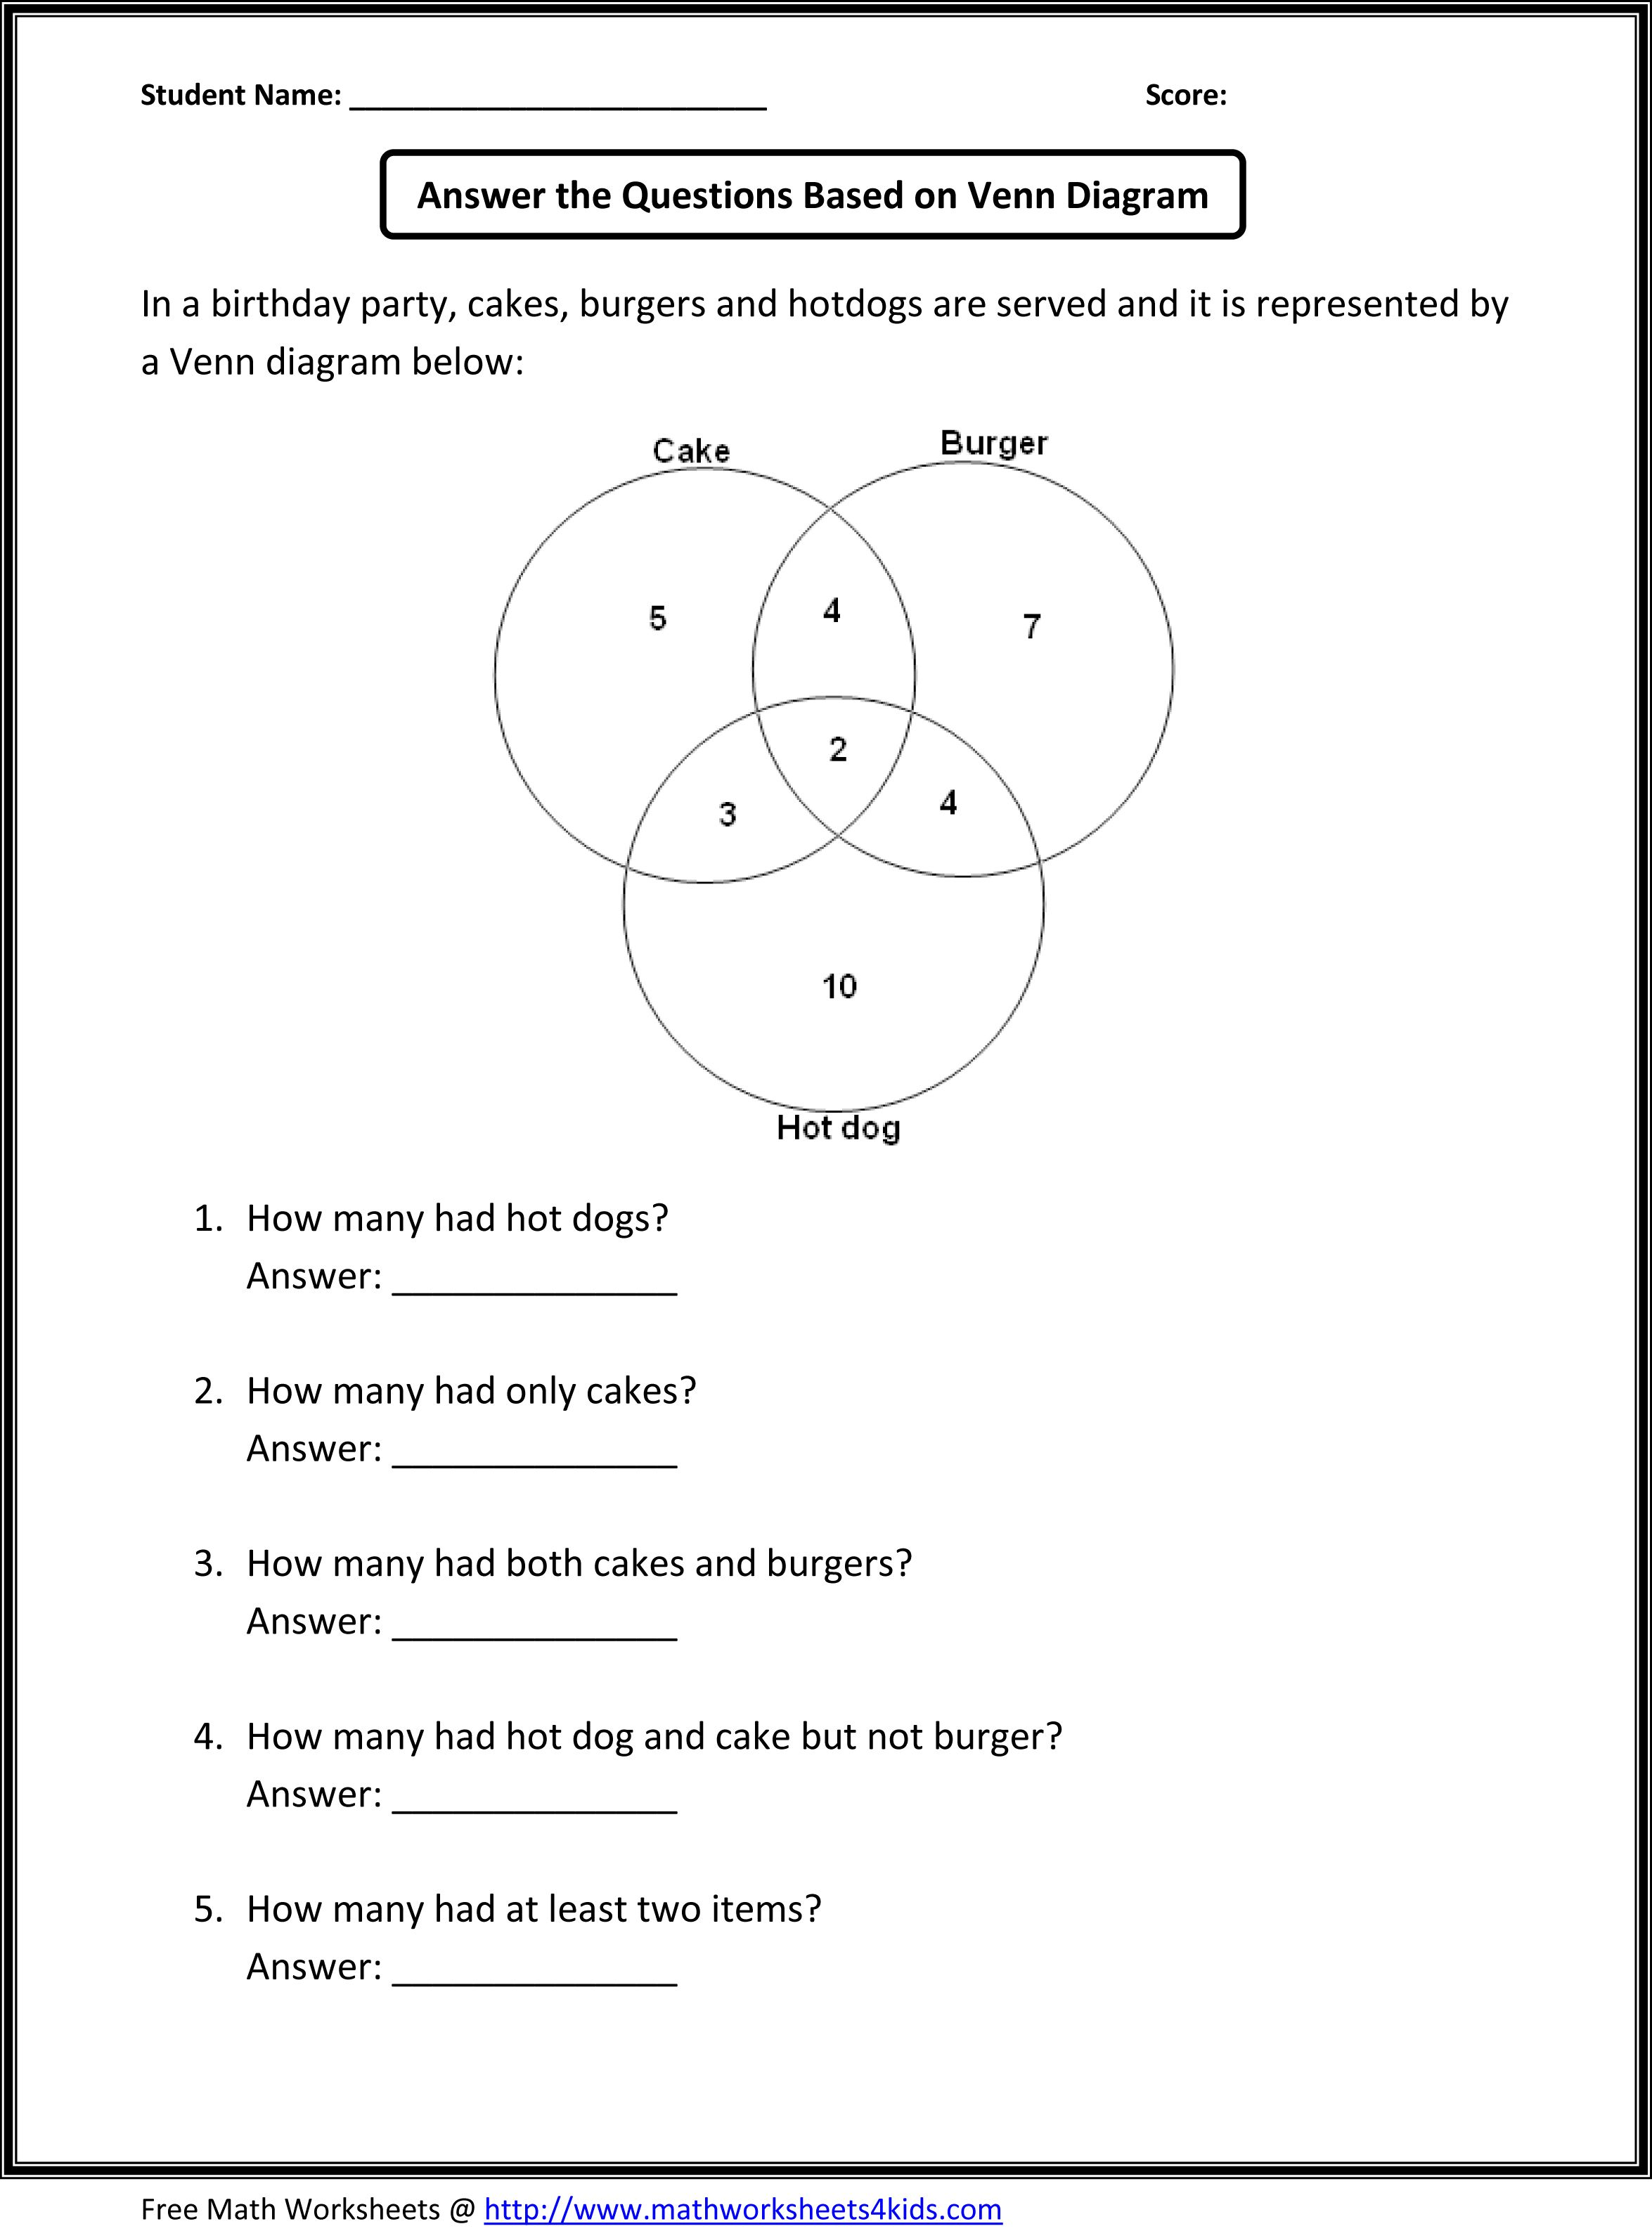 Worksheet 604780 Maths Worksheets for Grade 5 Free Math – 5 Grade Math Worksheet